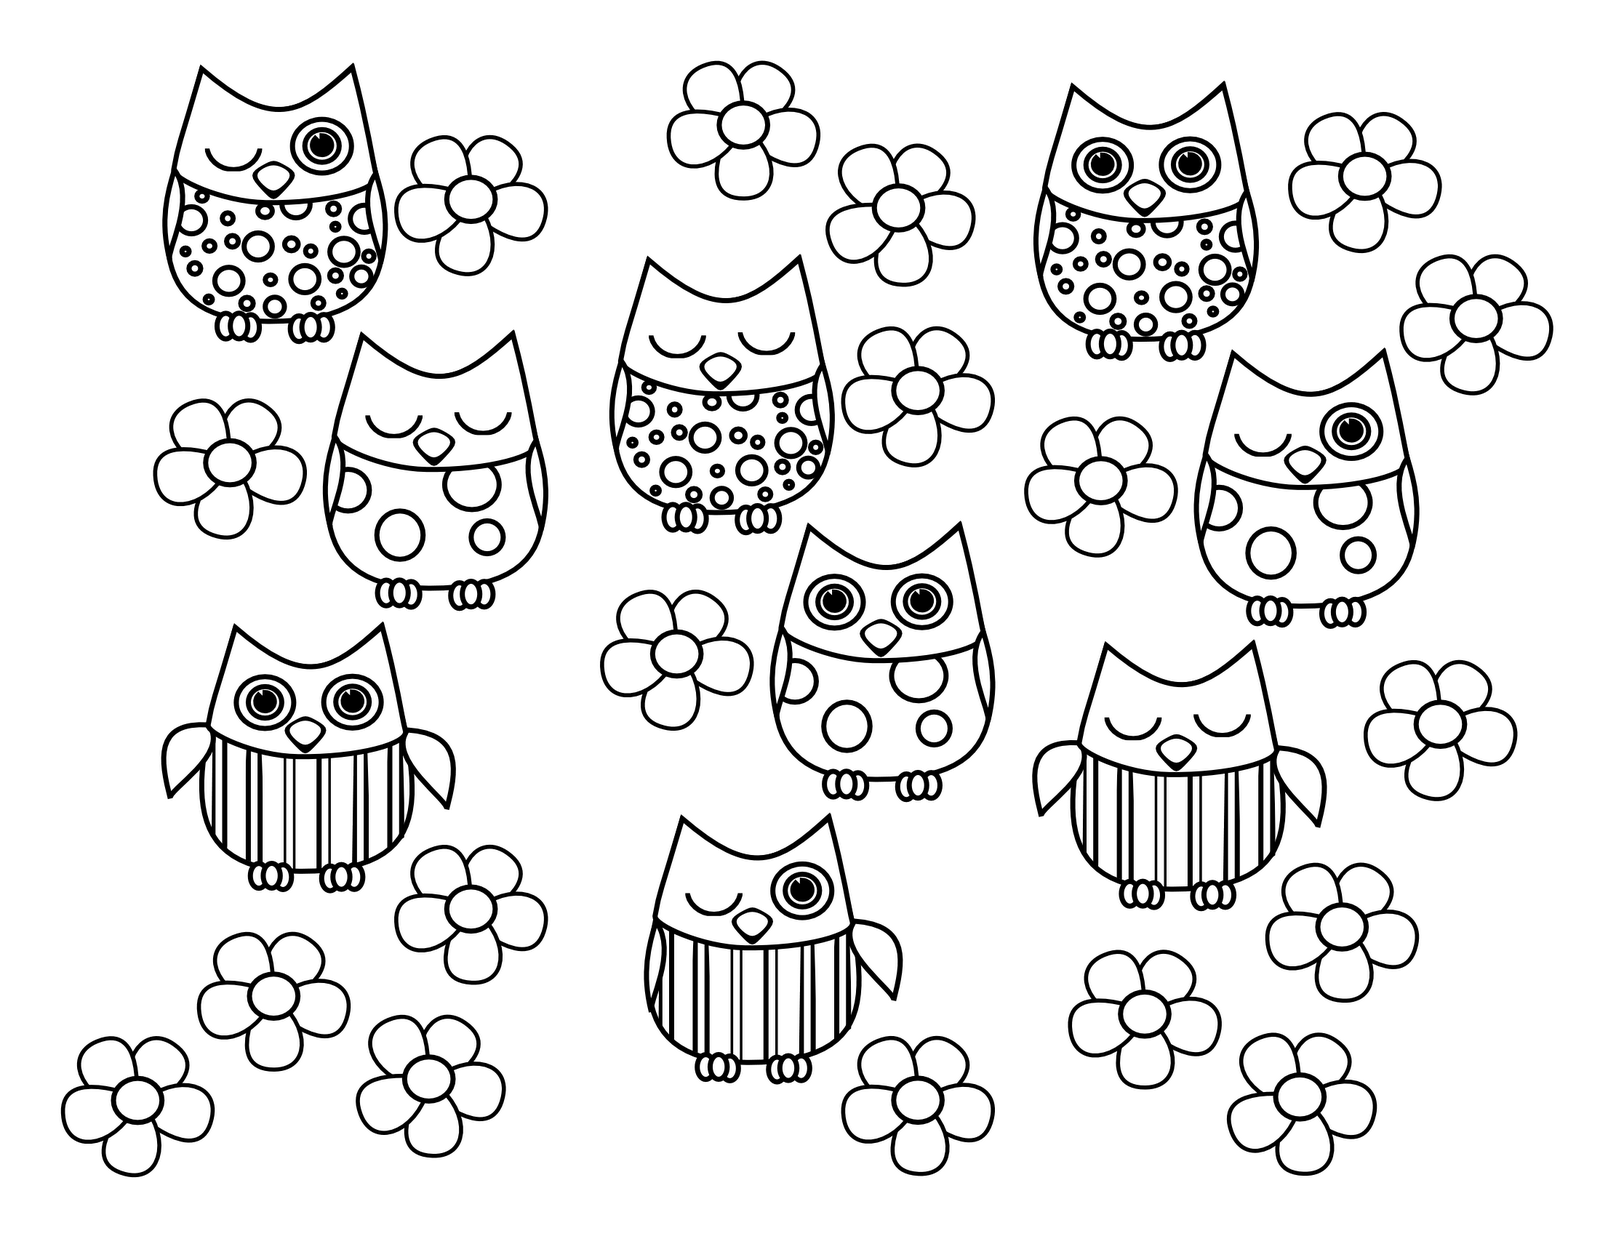 Adult Best Owl Coloring Pages Free Images cute owl coloring pages az sweetheart page kiddos origami jewelry gallery images